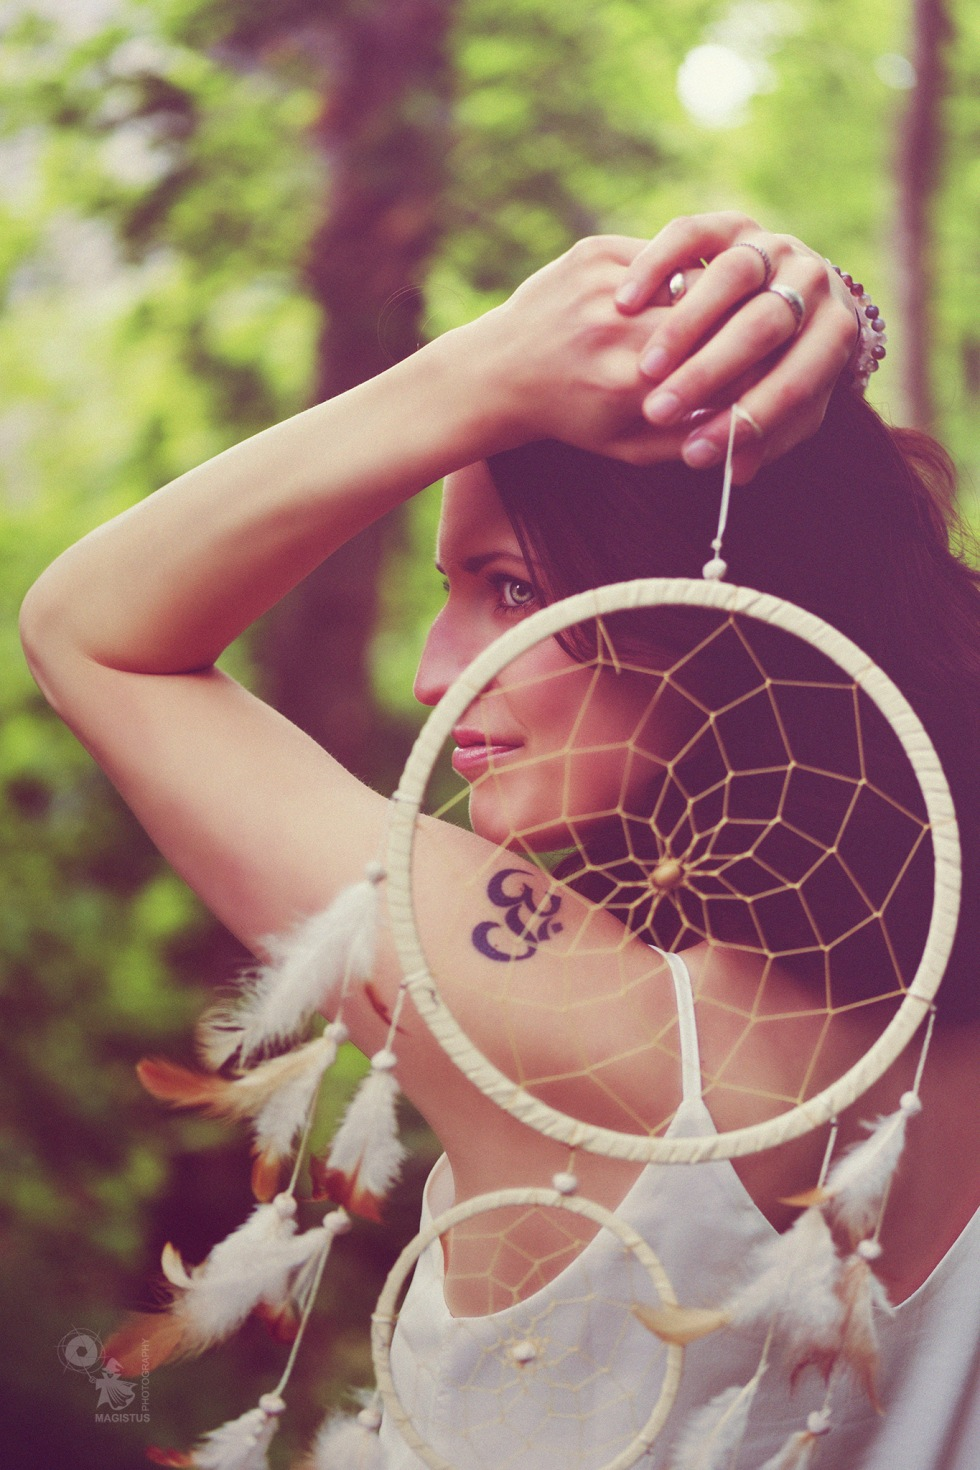 Dreamcatcher - beautiful portrait of fantastic girl posing with a dreamcatcher in the nature. - © by Magistus